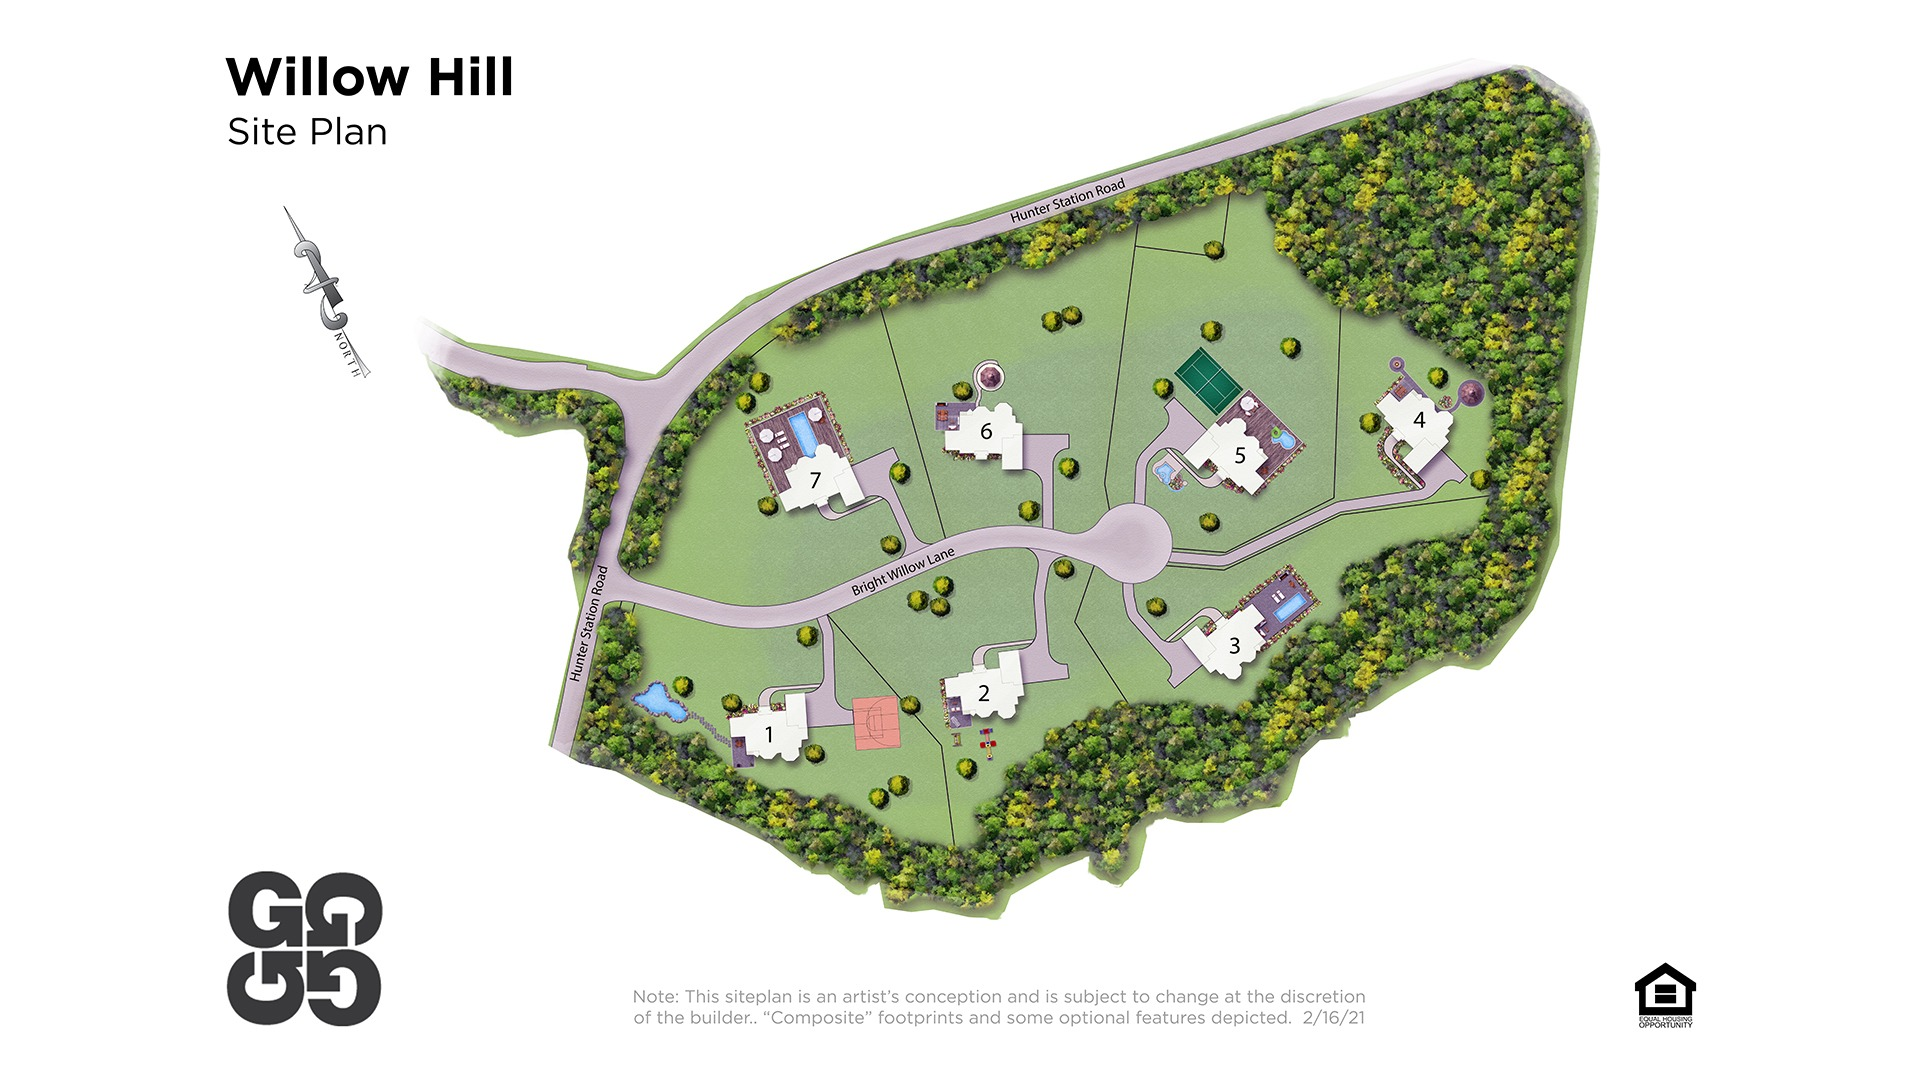 Willow Hill Site Plan